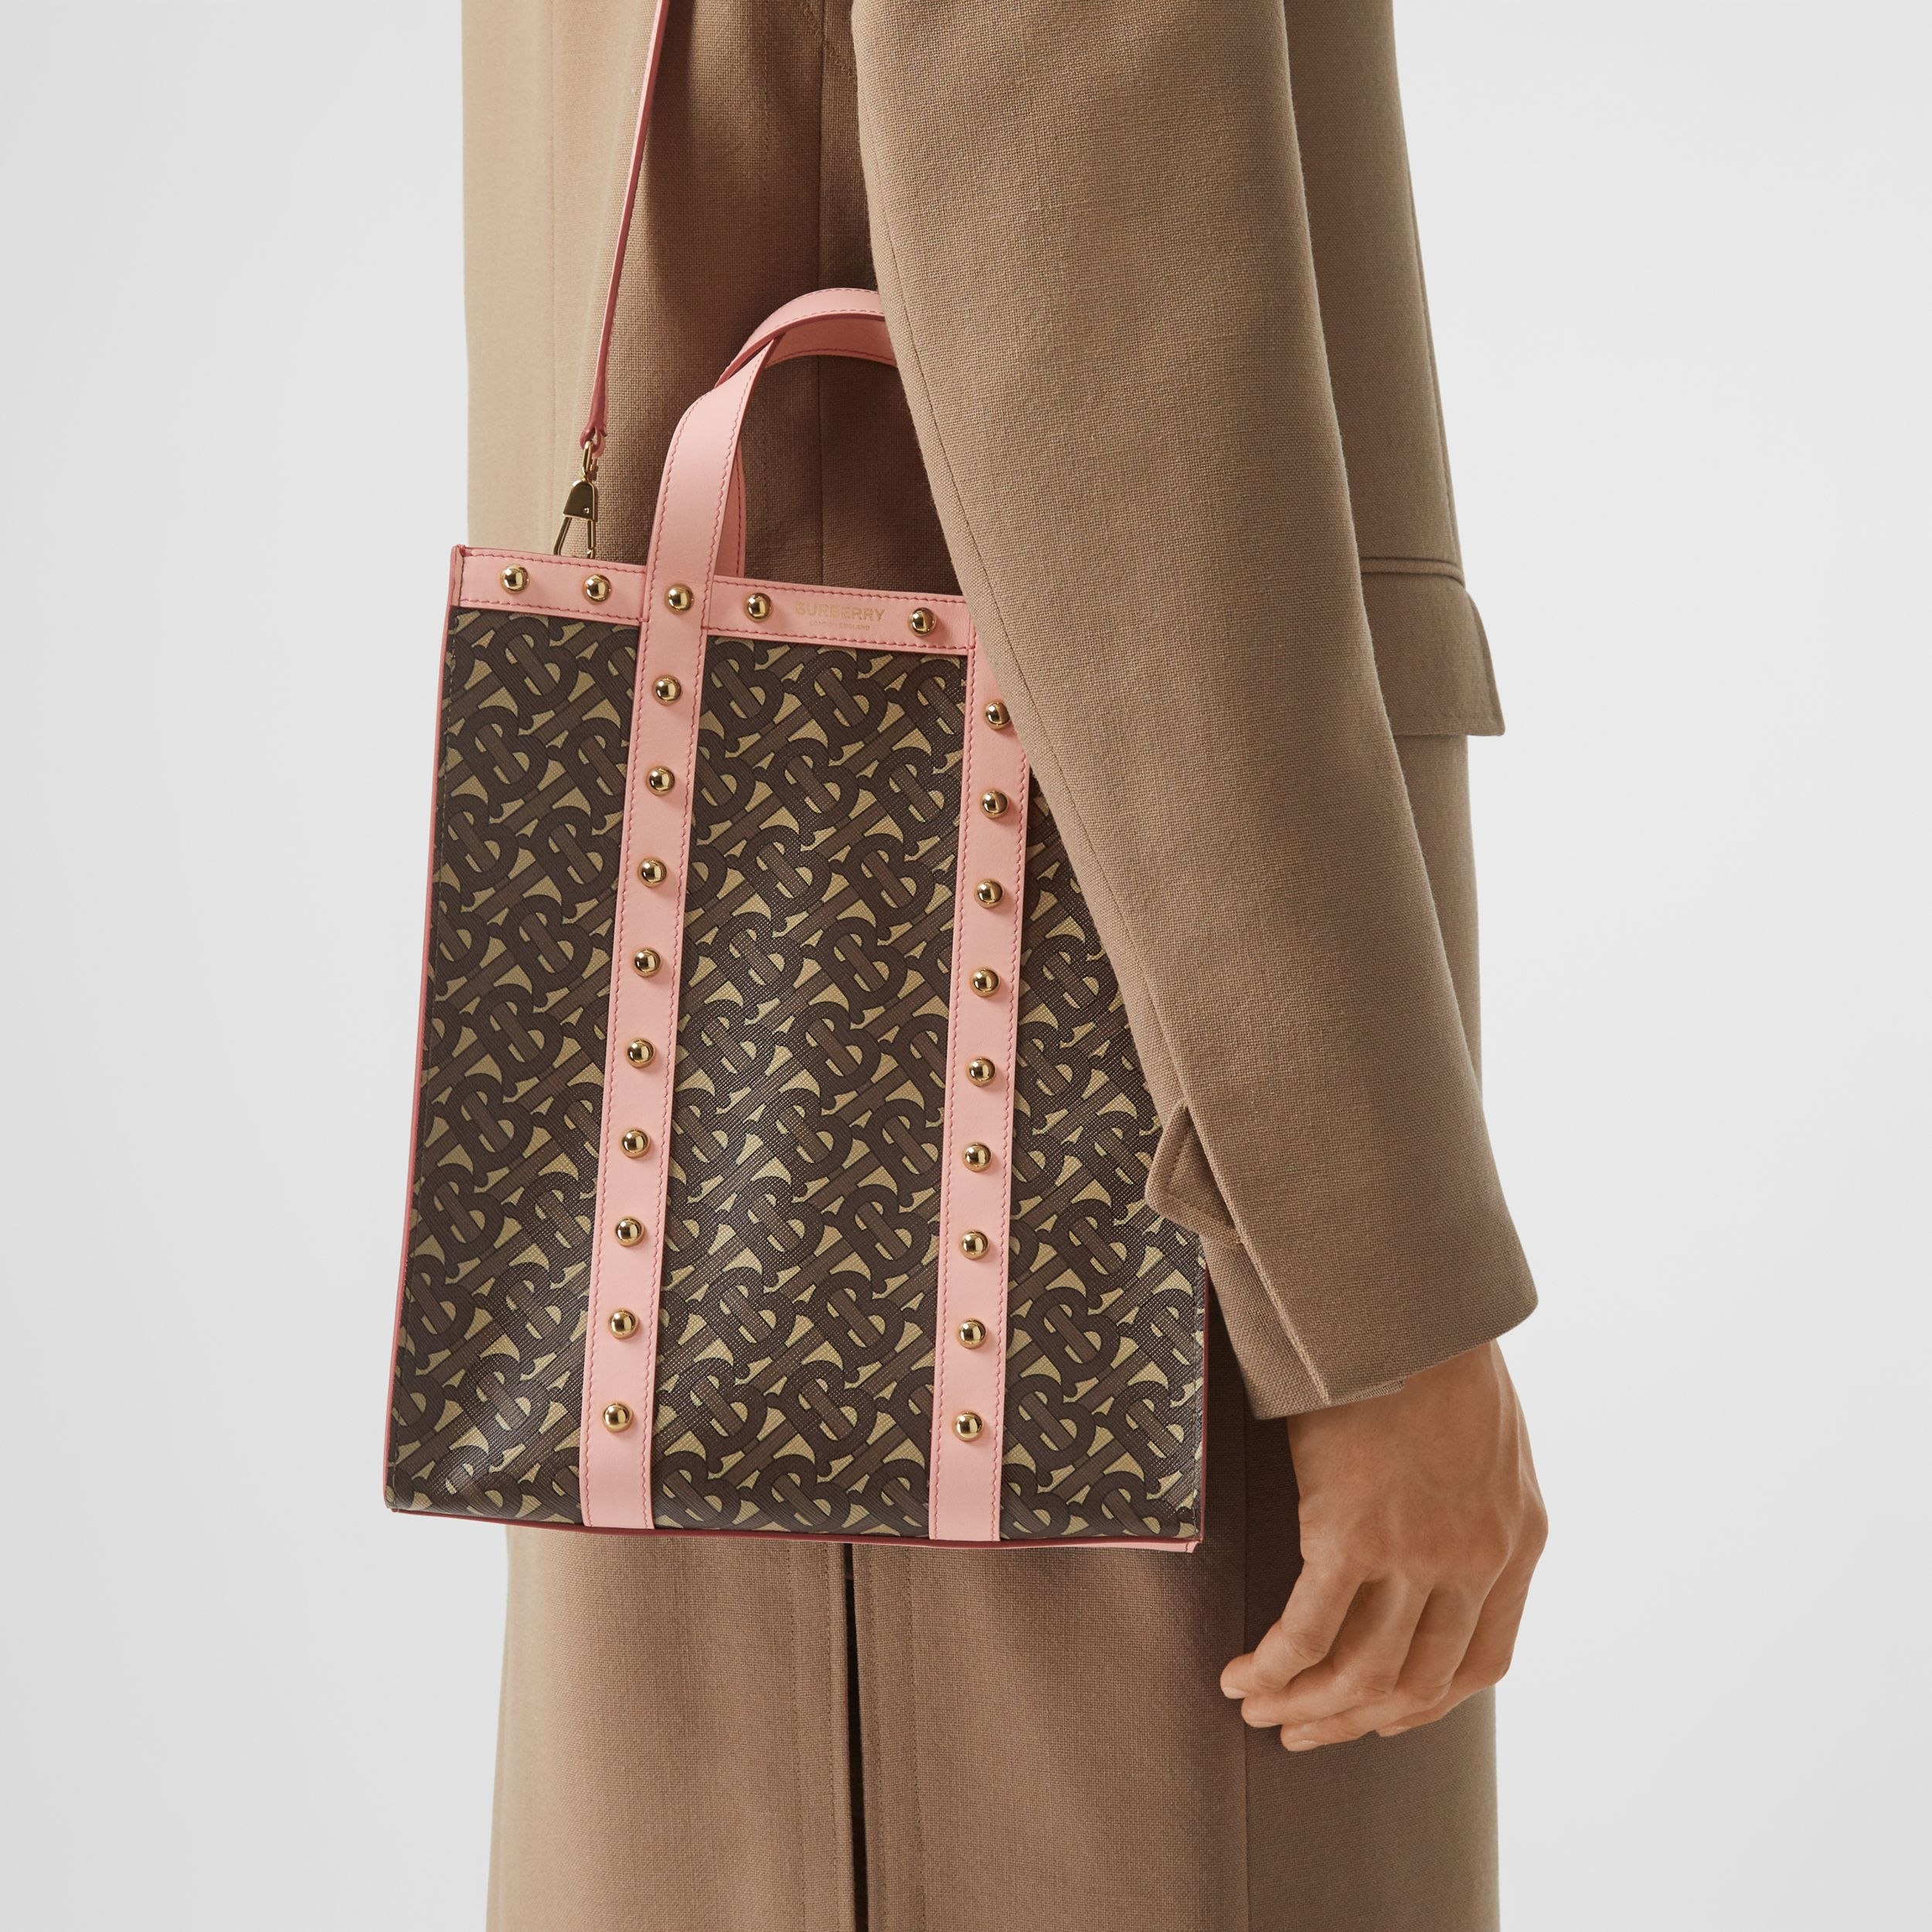 Small Monogram Print E-canvas Portrait Tote Bag in Cloud Pink - Women | Burberry - 4